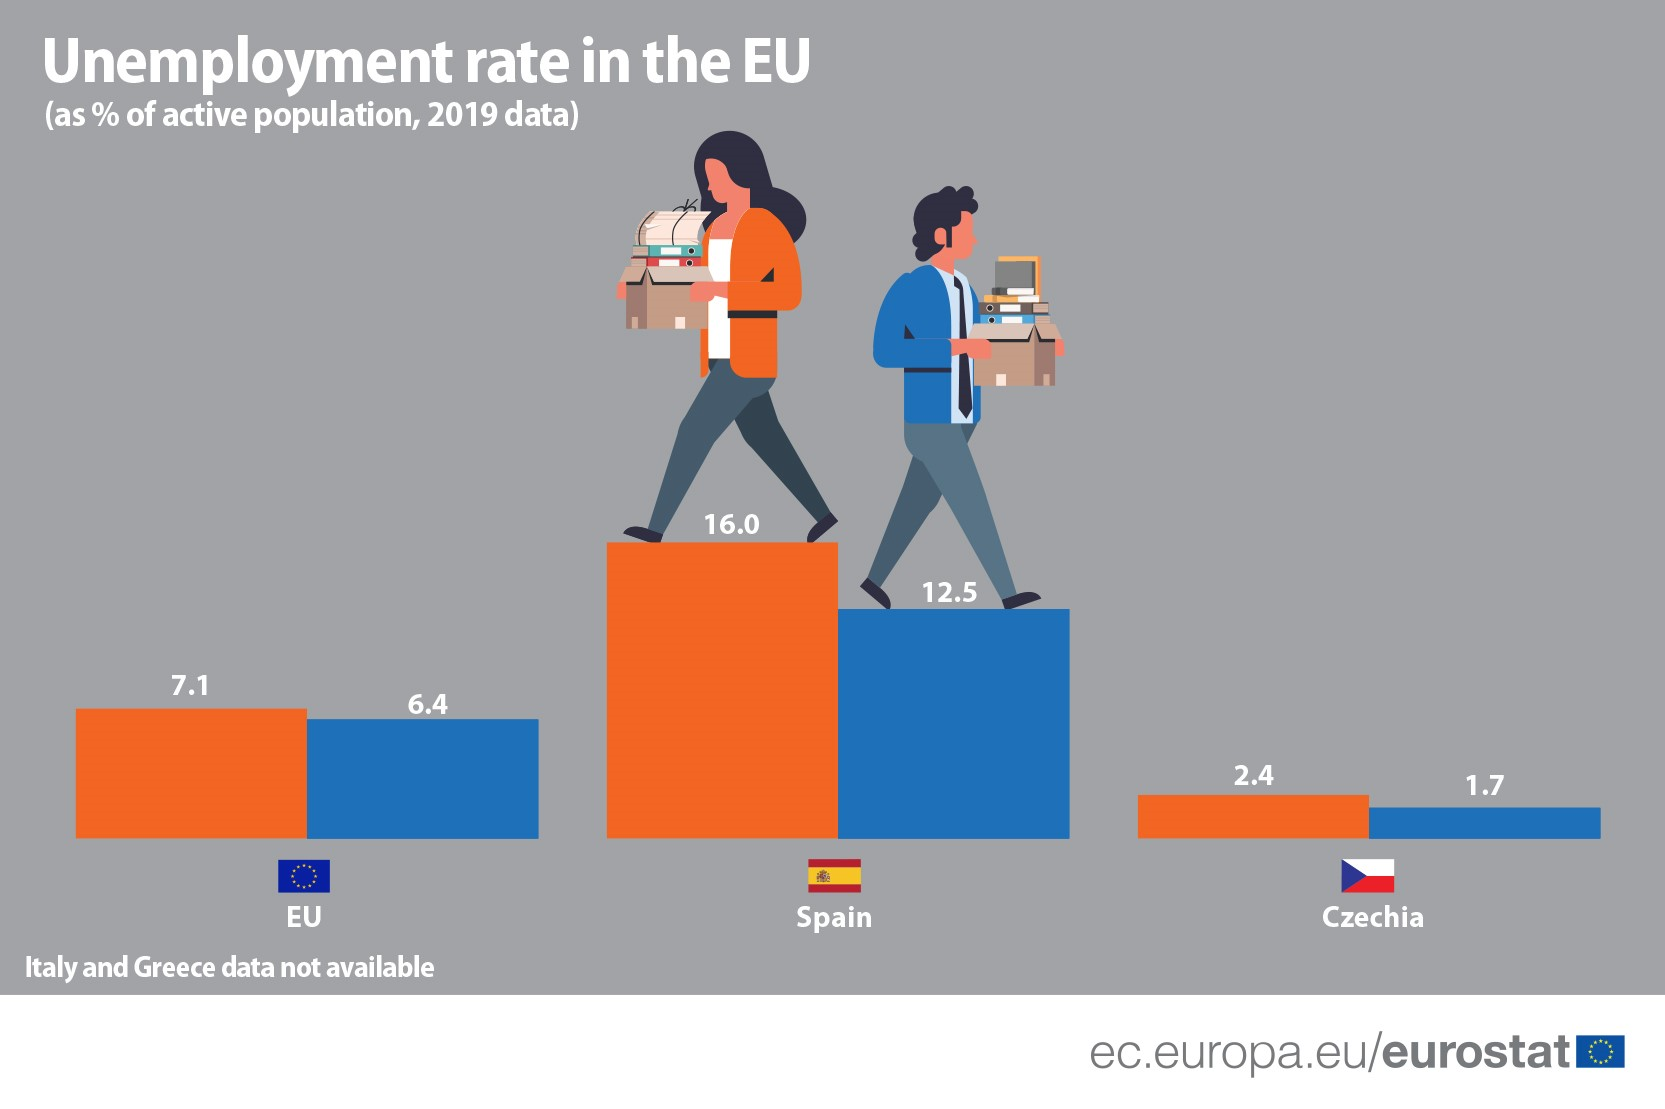 Unmployment-rate-in-the-EU